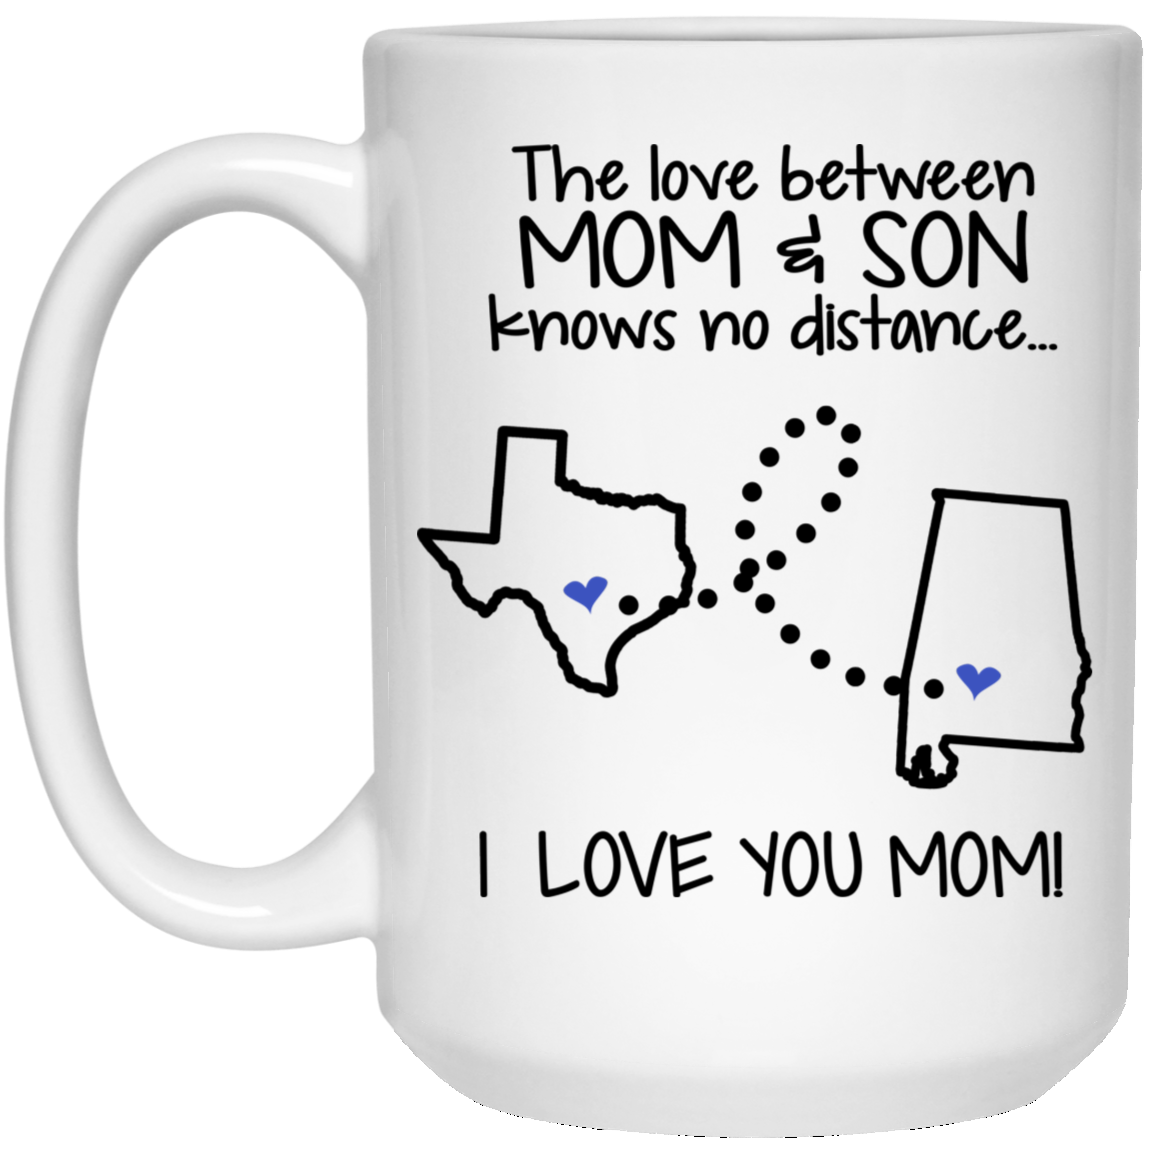 ALABAMA TEXAS THE LOVE BETWEEN MOM AND SON